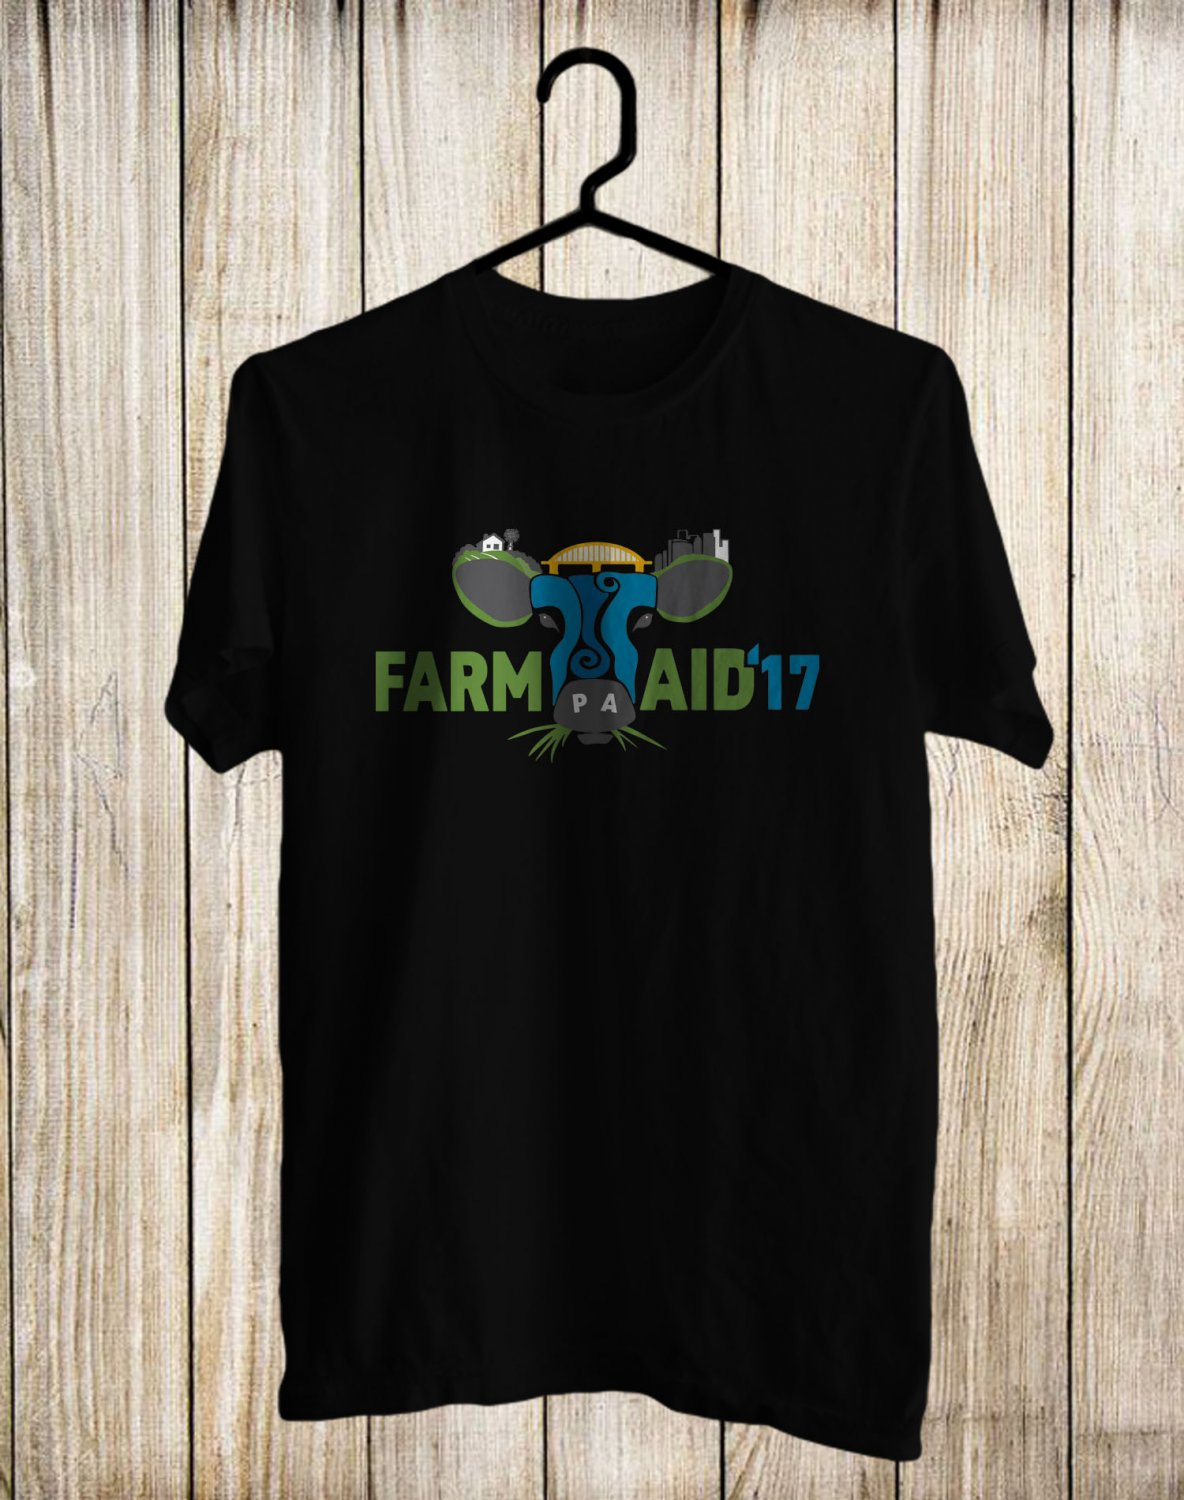 Farm Aid Music festival 2017 Black Tee's Front Side by Complexart